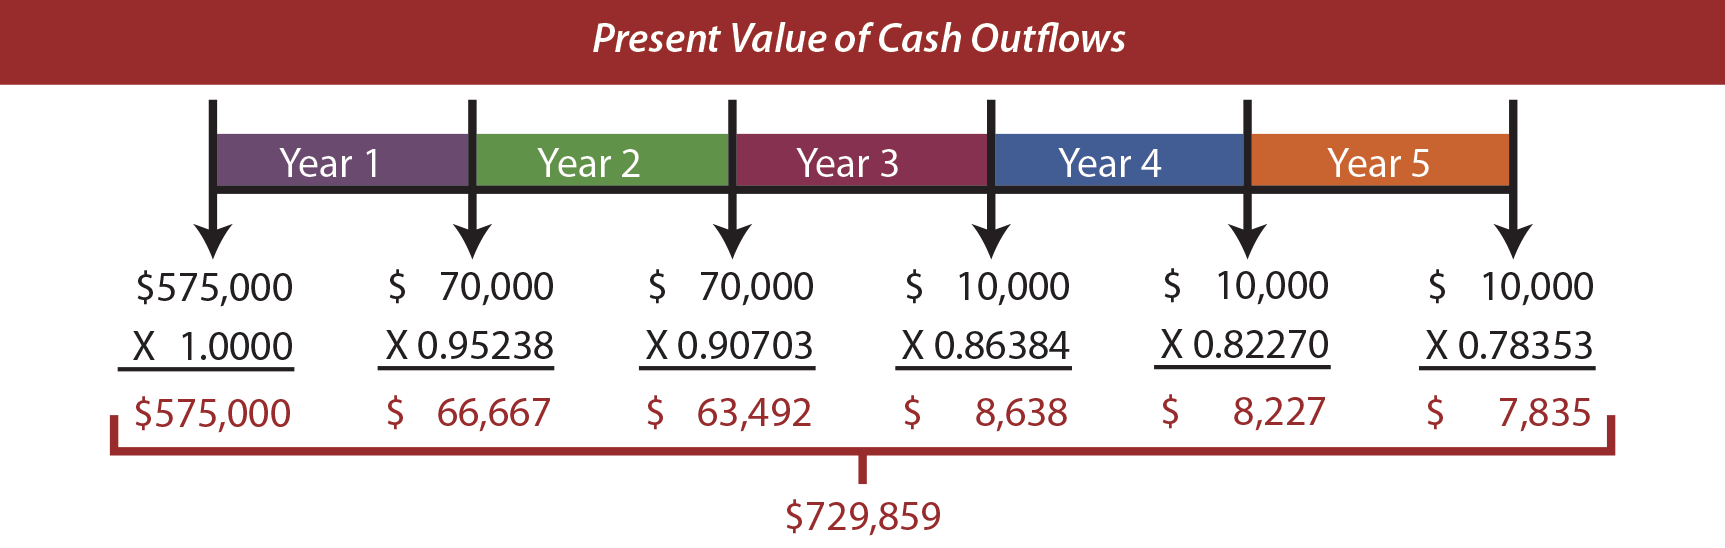 Present Value of Cash Outflows Illustration